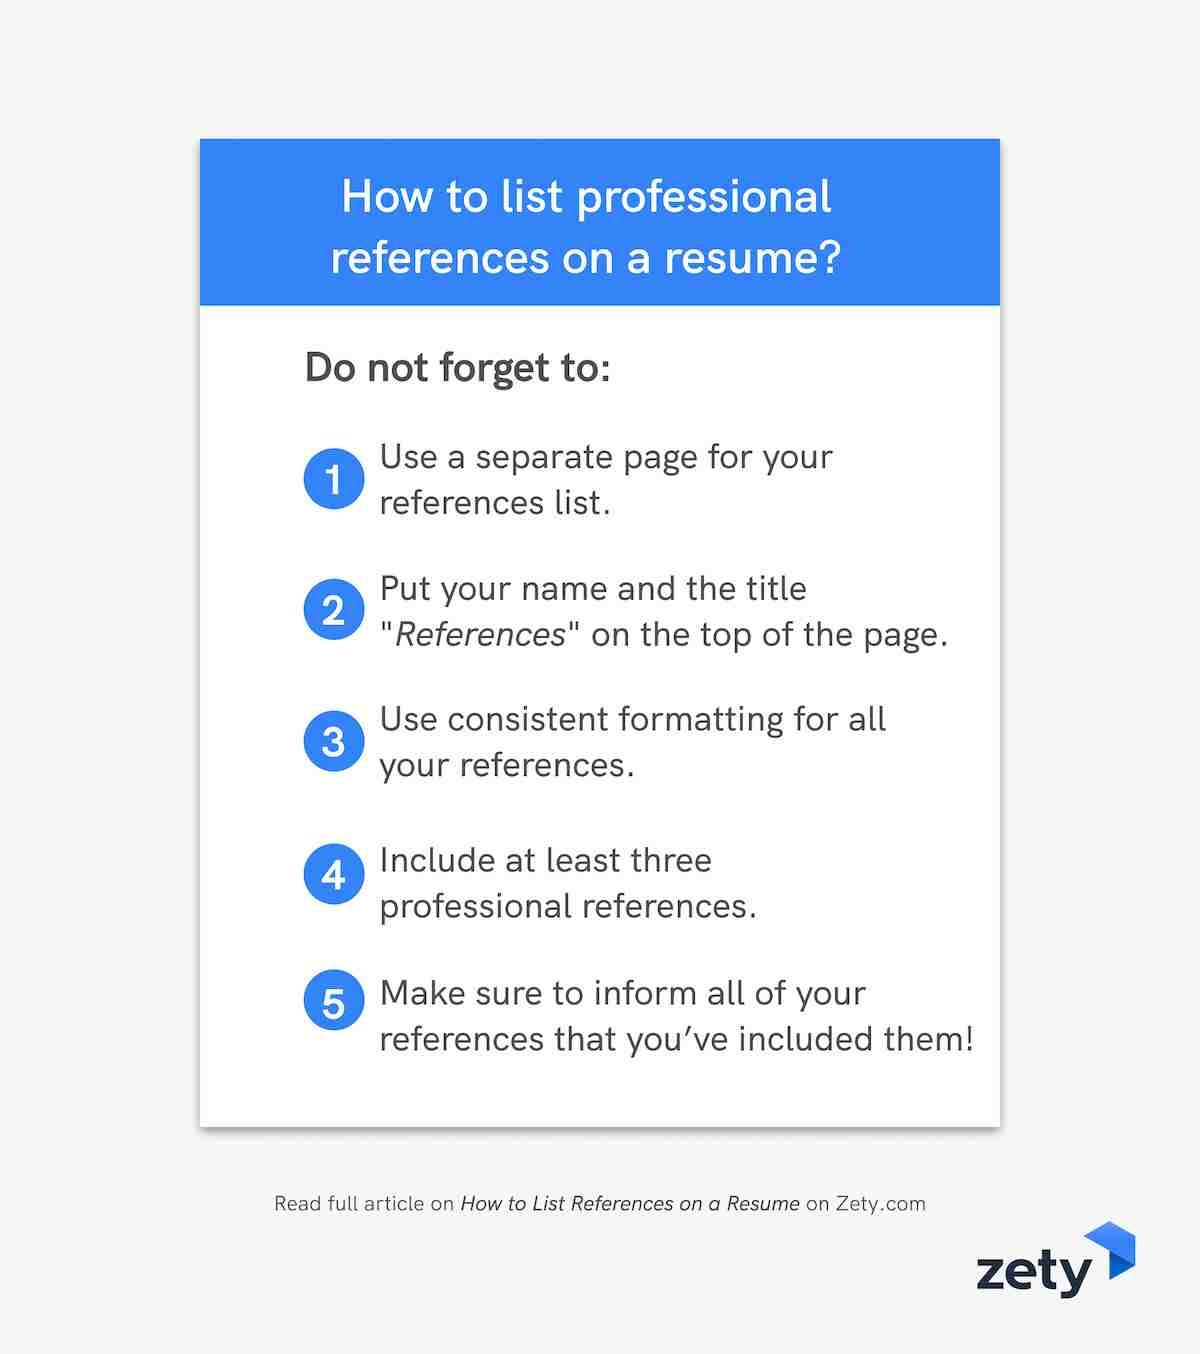 How to list professional references on a resume